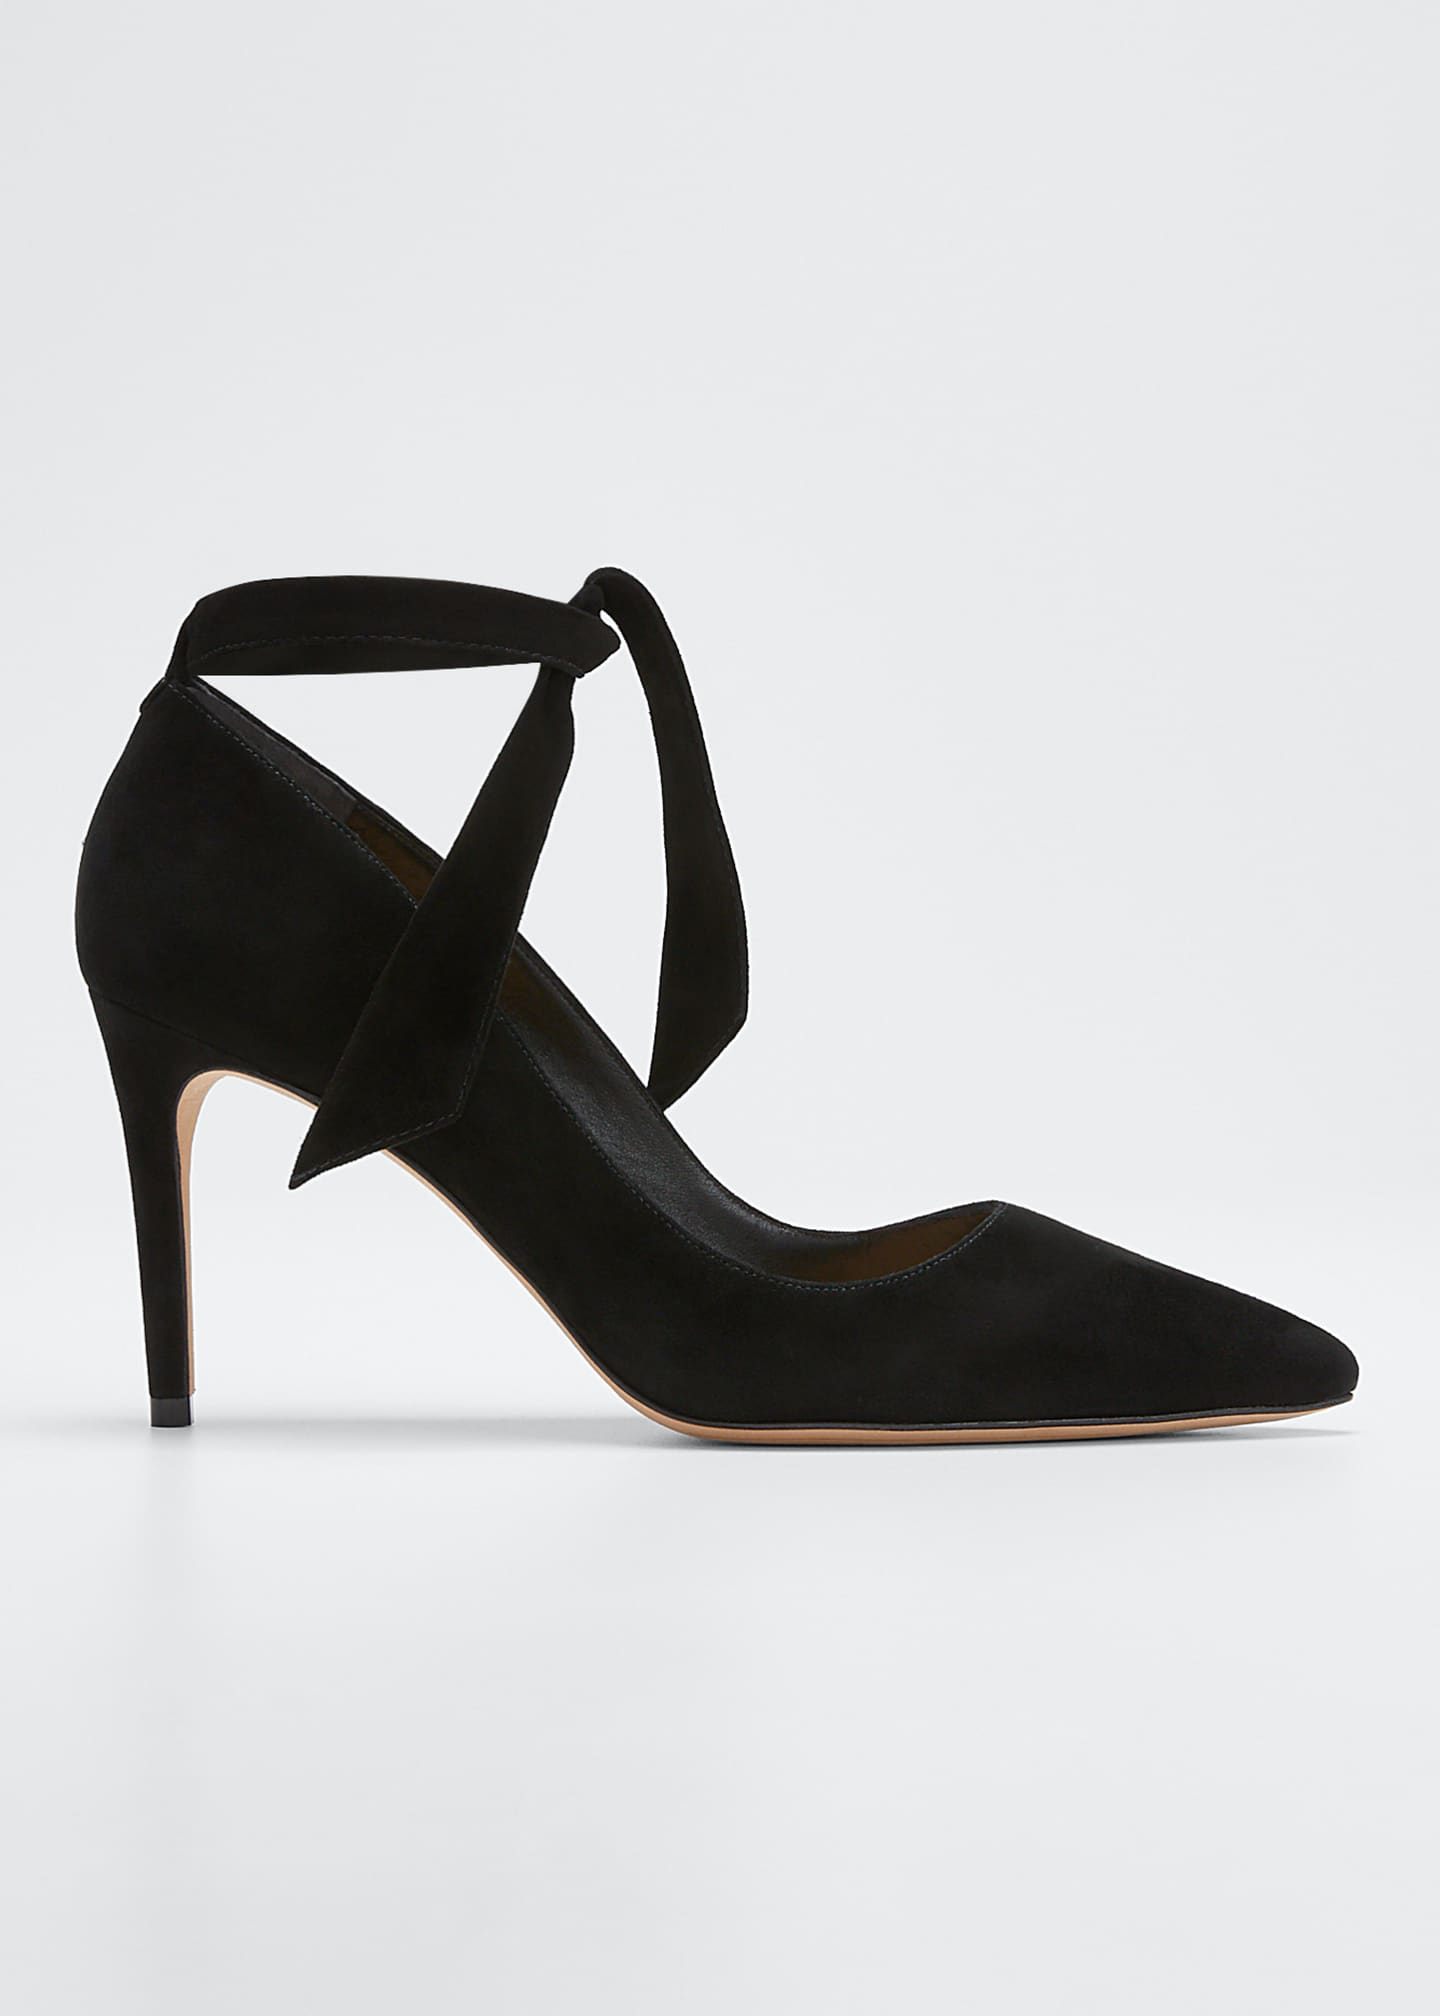 Alexandre Birman Clarita Knotted Suede Ankle-Wrap Pumps